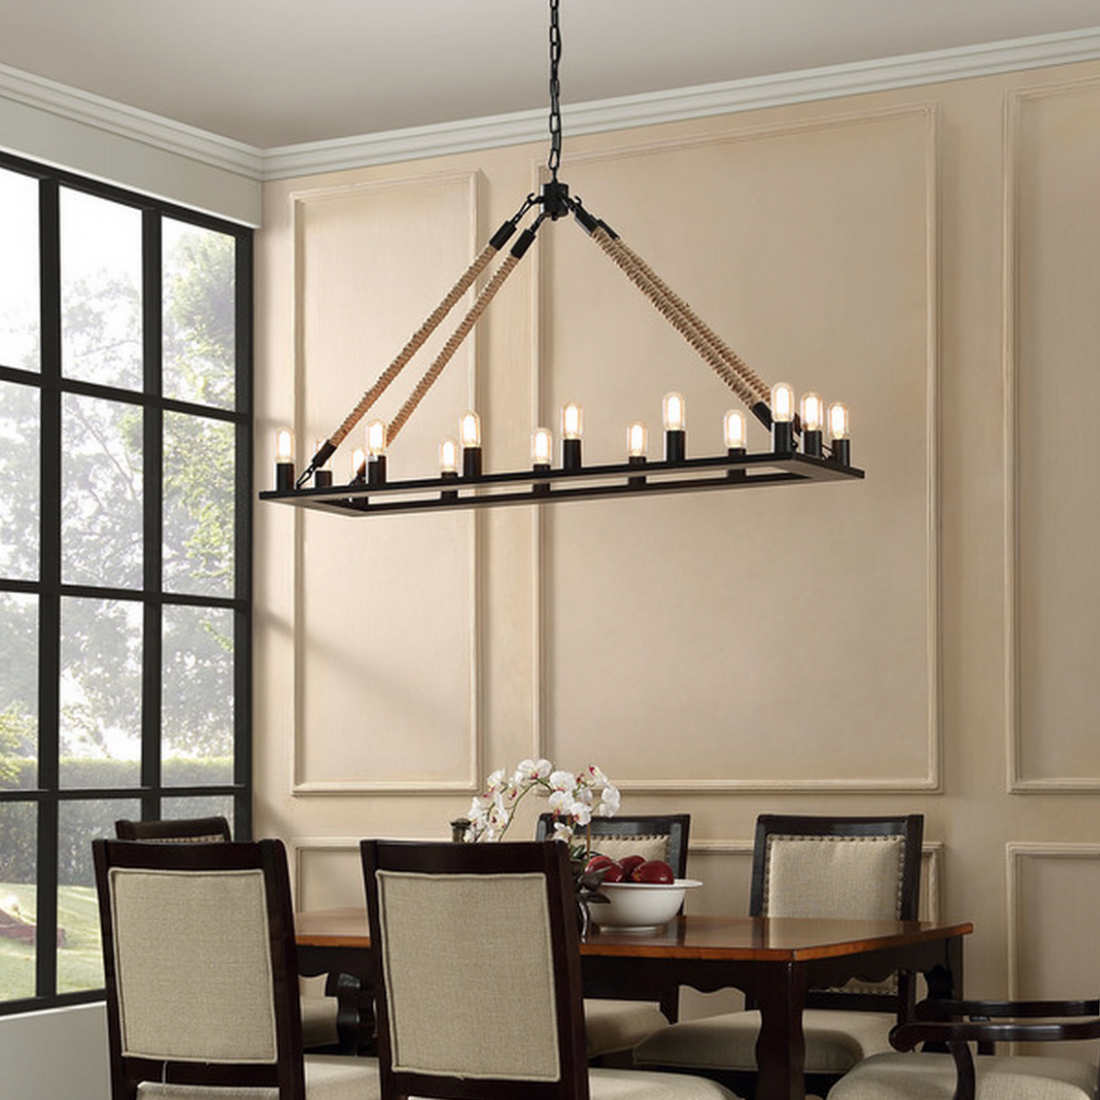 Restoration Hardware Rope Filament Rectangular Chandelier  : ScreenShot2015 04 28at32731PM 1100x1100 from www.copycatchic.com size 1100 x 1100 png 1379kB